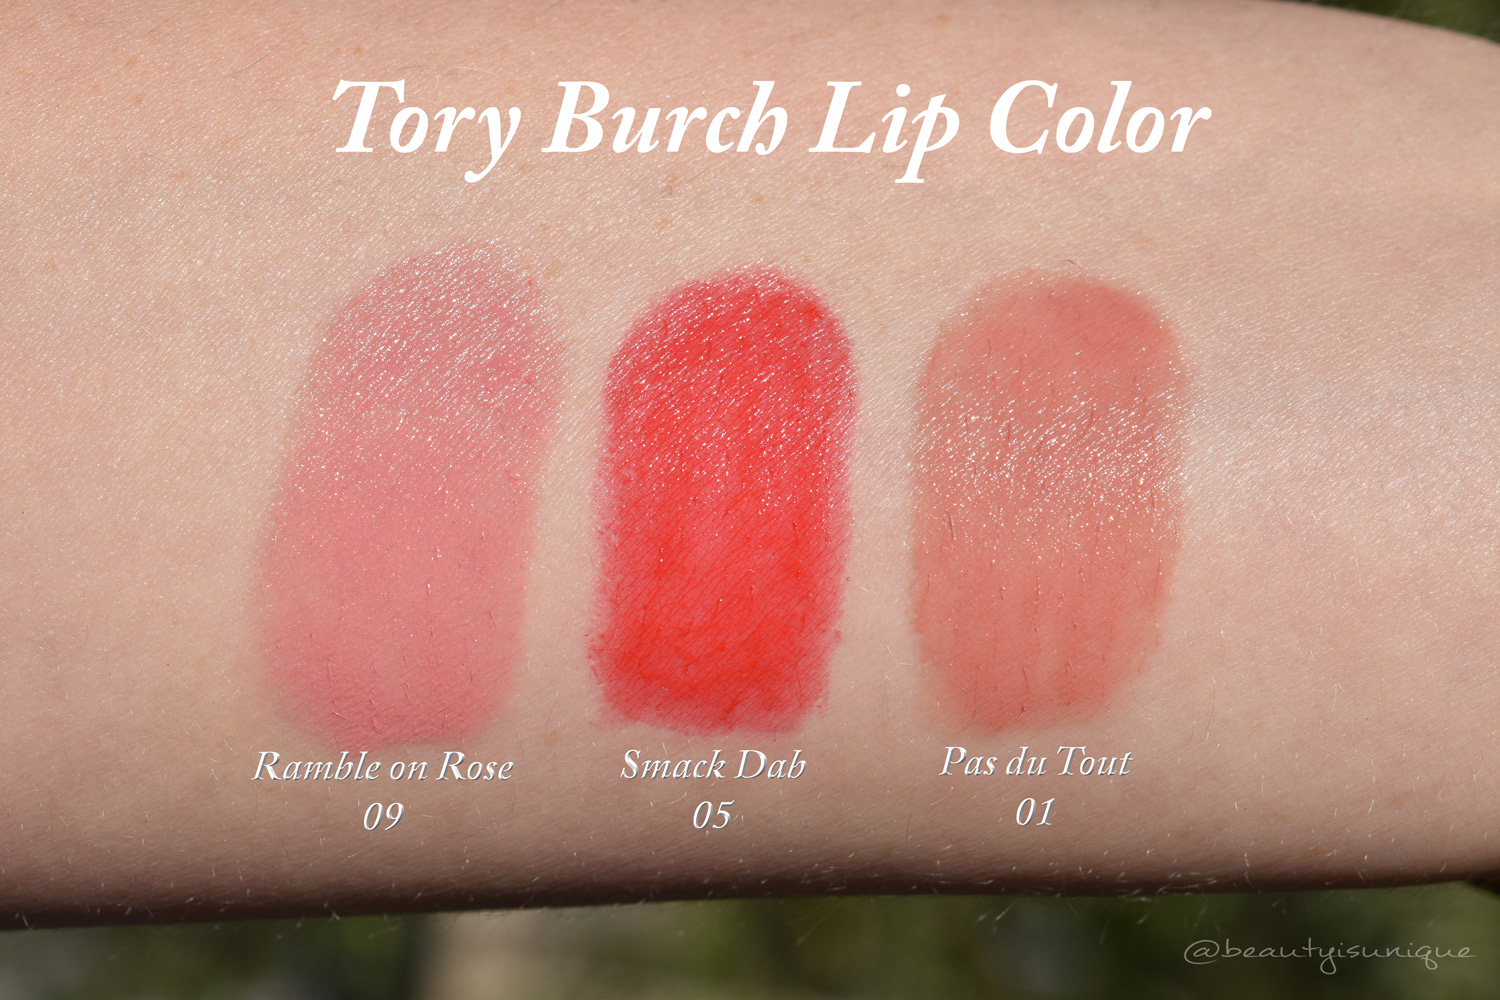 tory-burch-lip-color-swatches